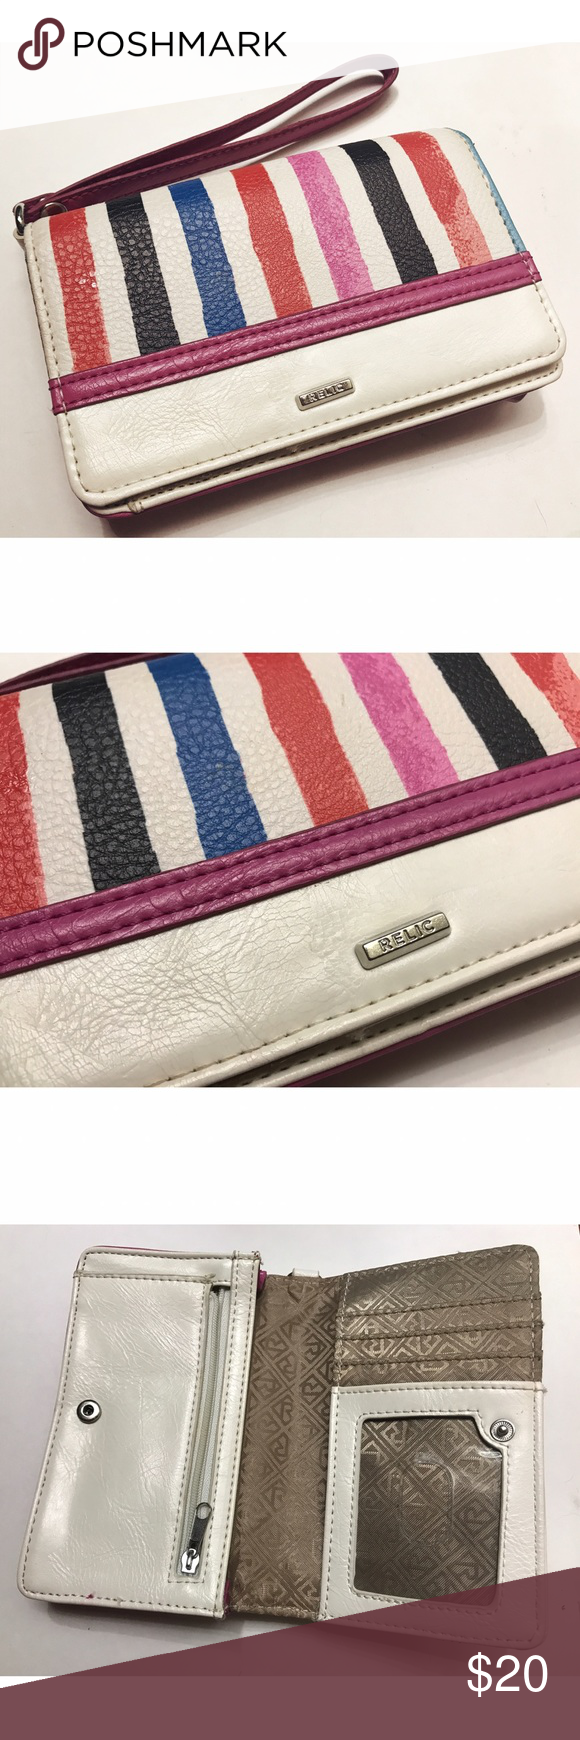 Relic • Striped Wallet Relic • Striped Wallet. Cute detailing and a little wristlet to carry it. In great condition. Relic Bags Wallets